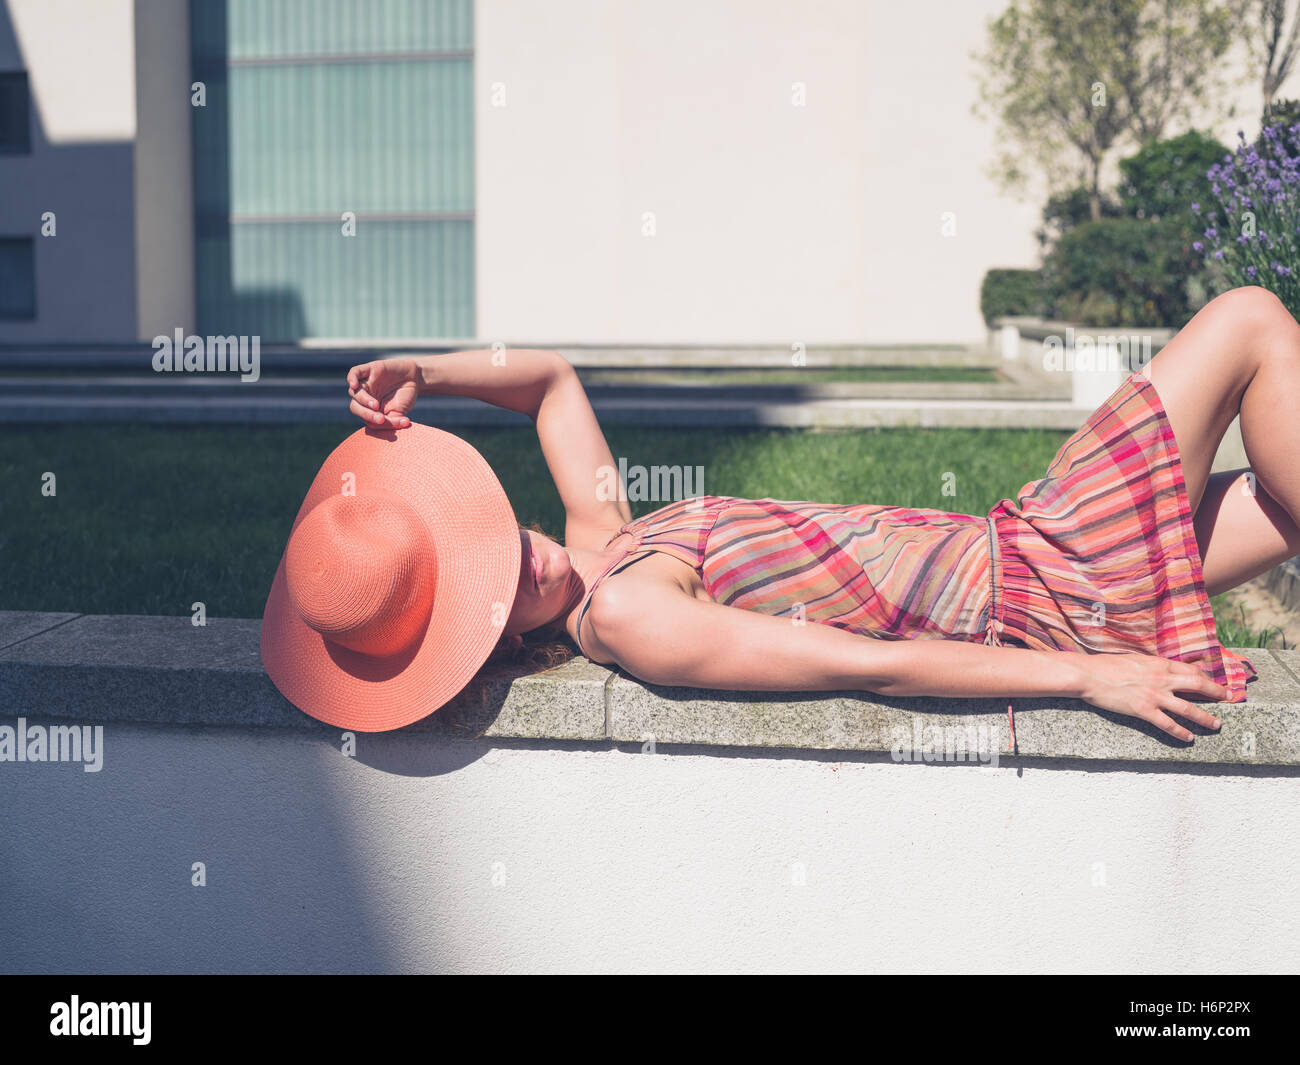 A young woman wearing a dress and a hat is relaxing outside on a sunny summer day - Stock Image